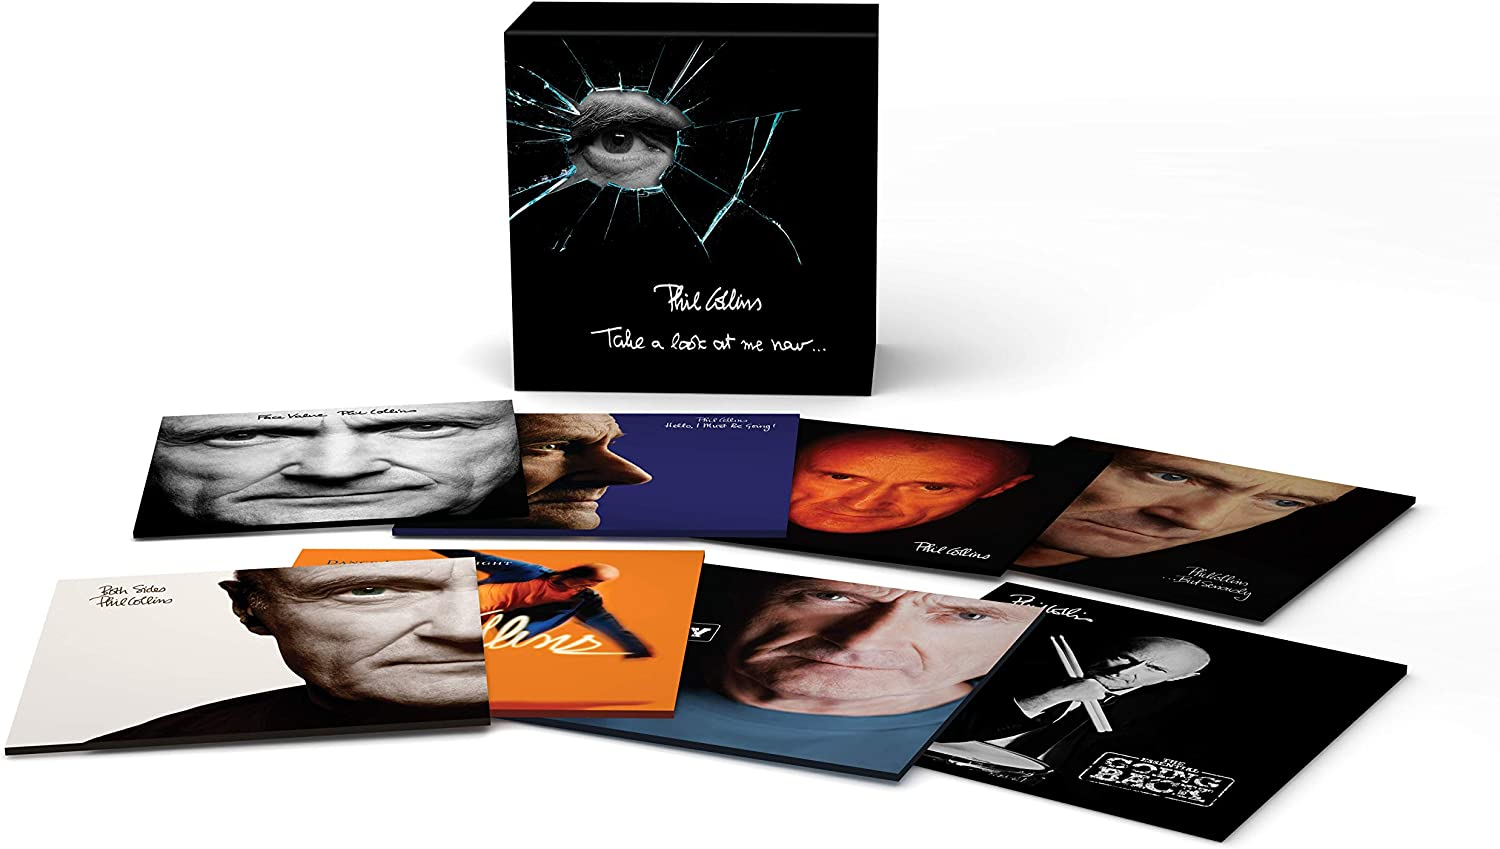 Take A Look At Me Now - The Complete Studio Collection by Phil Collins